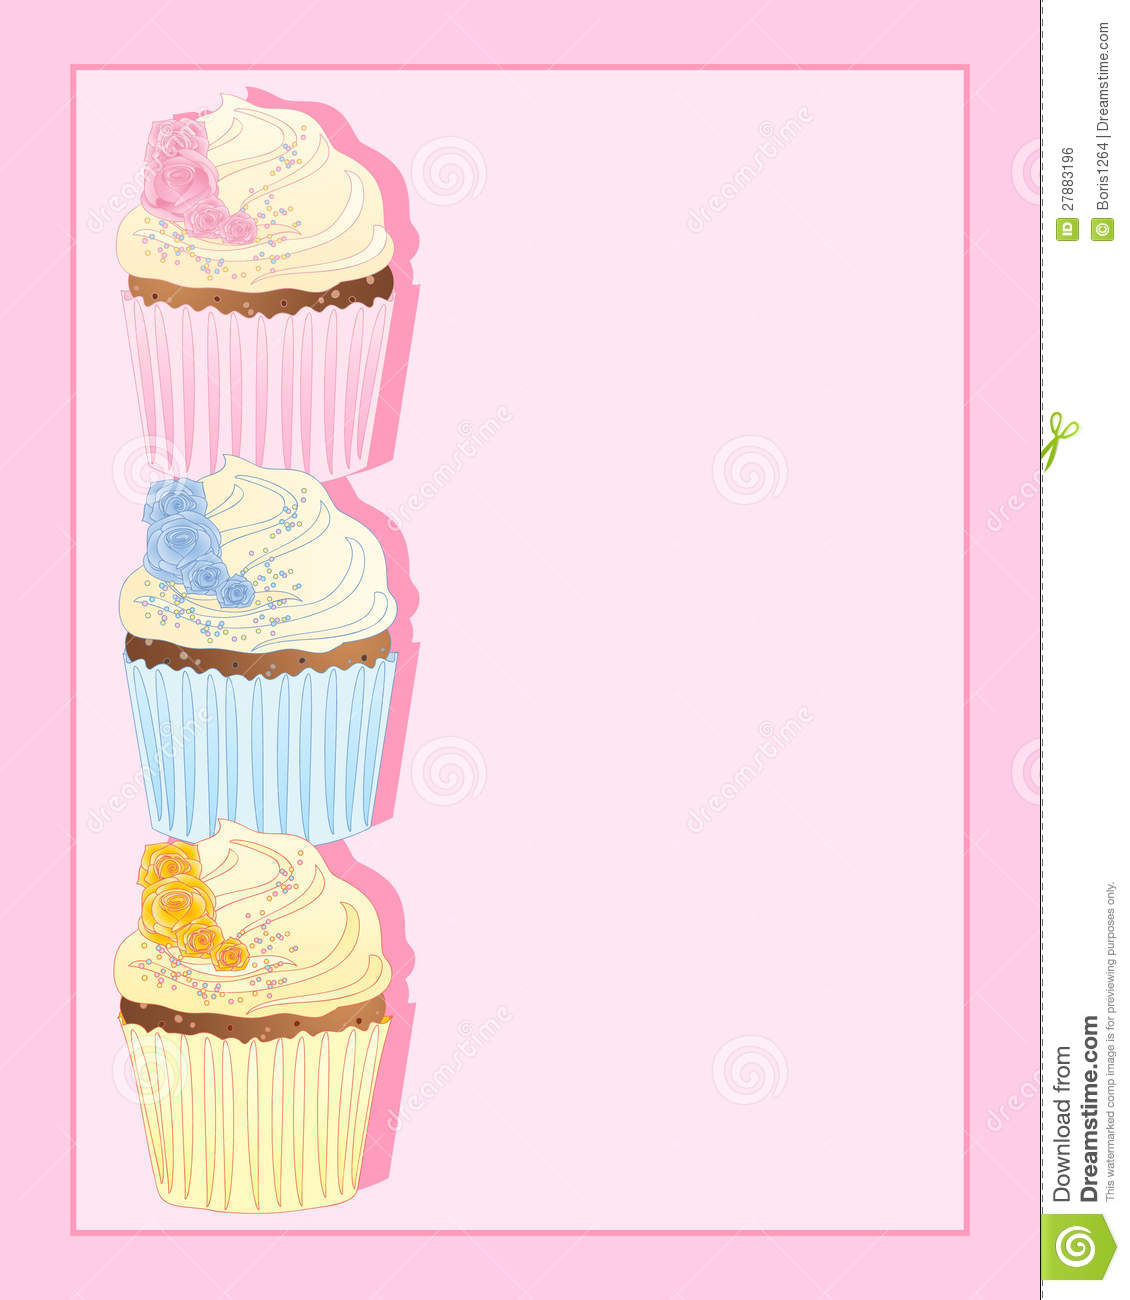 Cupcake met roze decoratie vector illustratie illustratie for Decoratie cupcakes